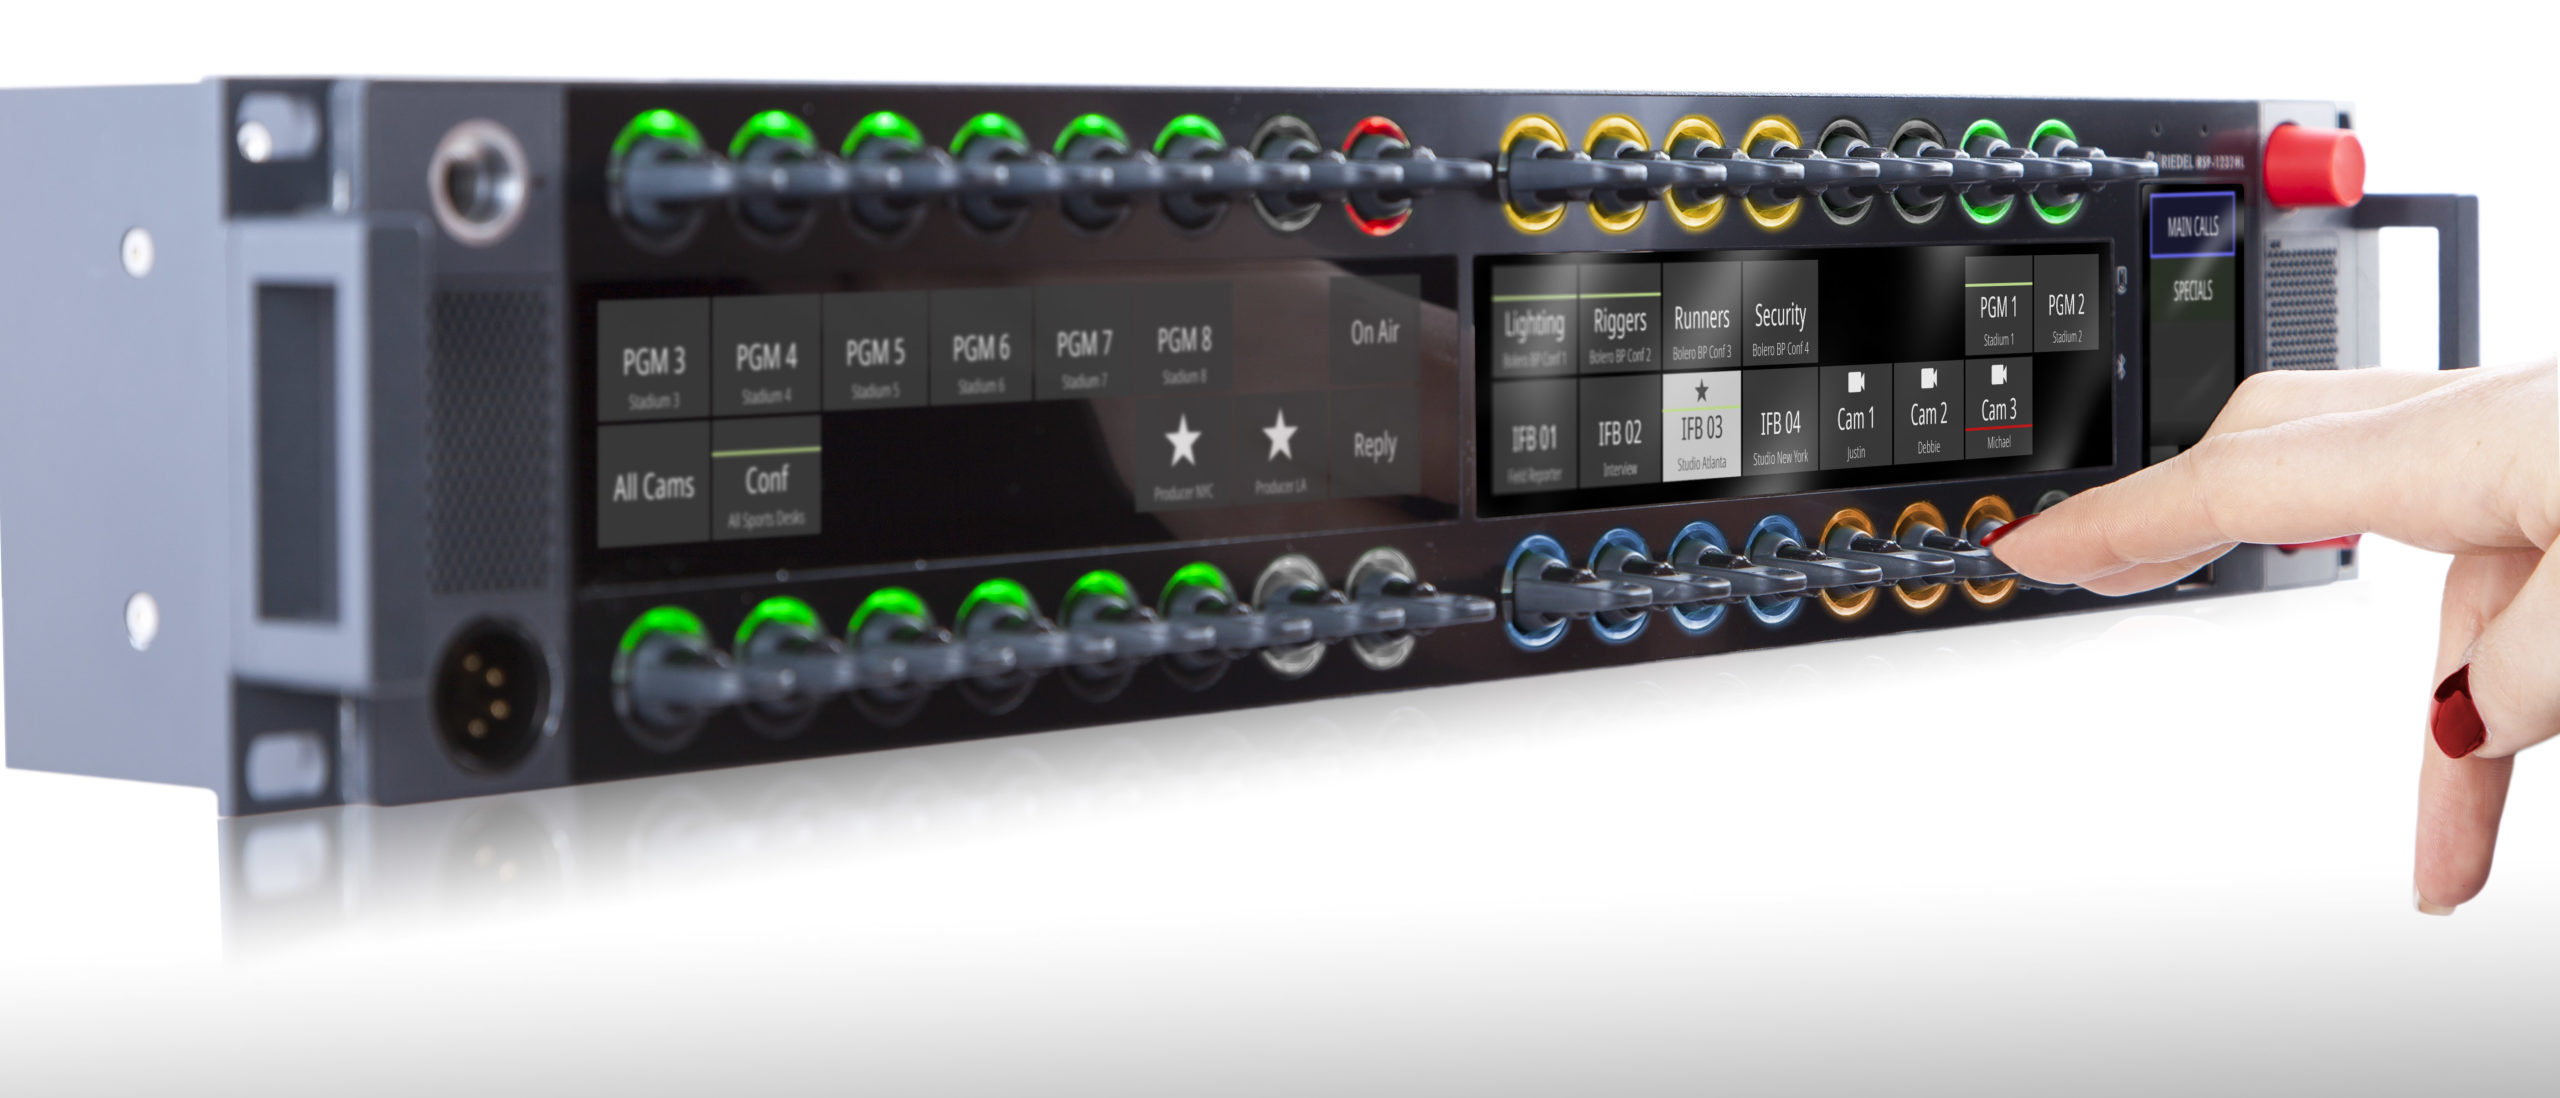 RIEDEL 1200 Series SmartPanel